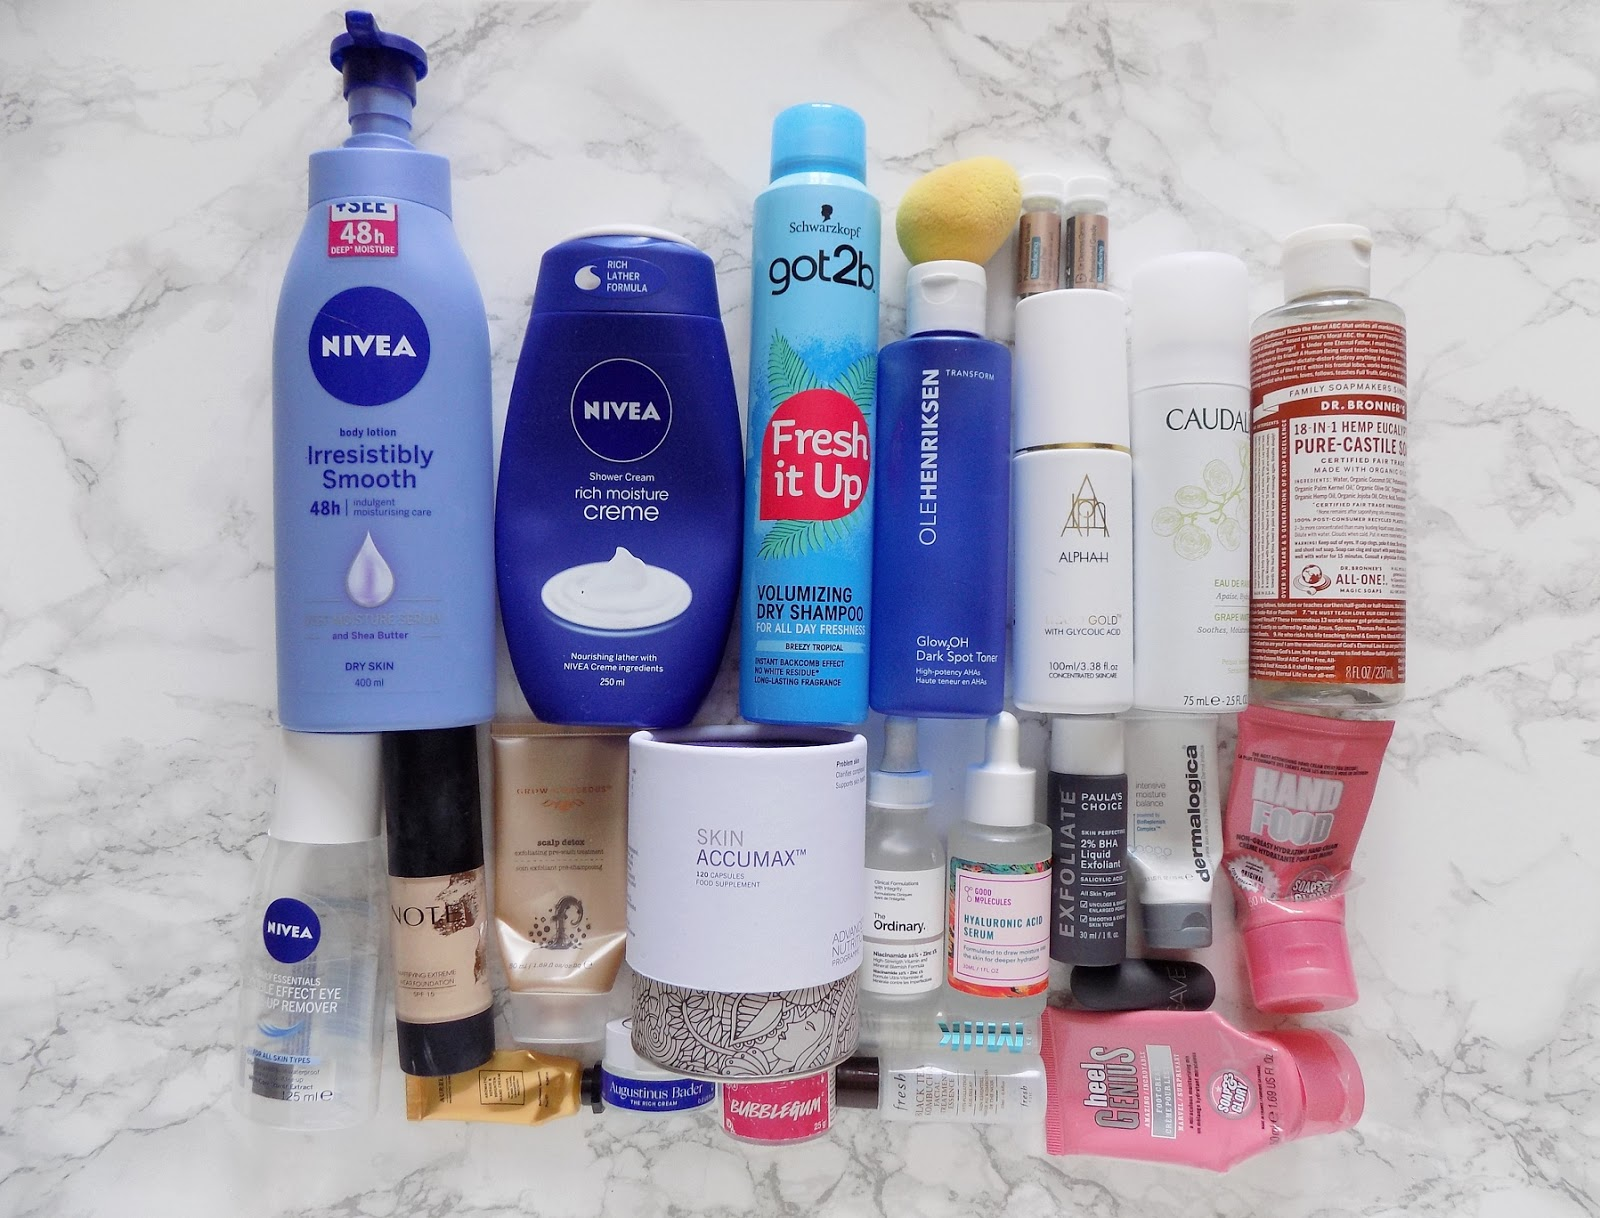 products empties reviews Nivea ole henriksen dr bronners skin accumax